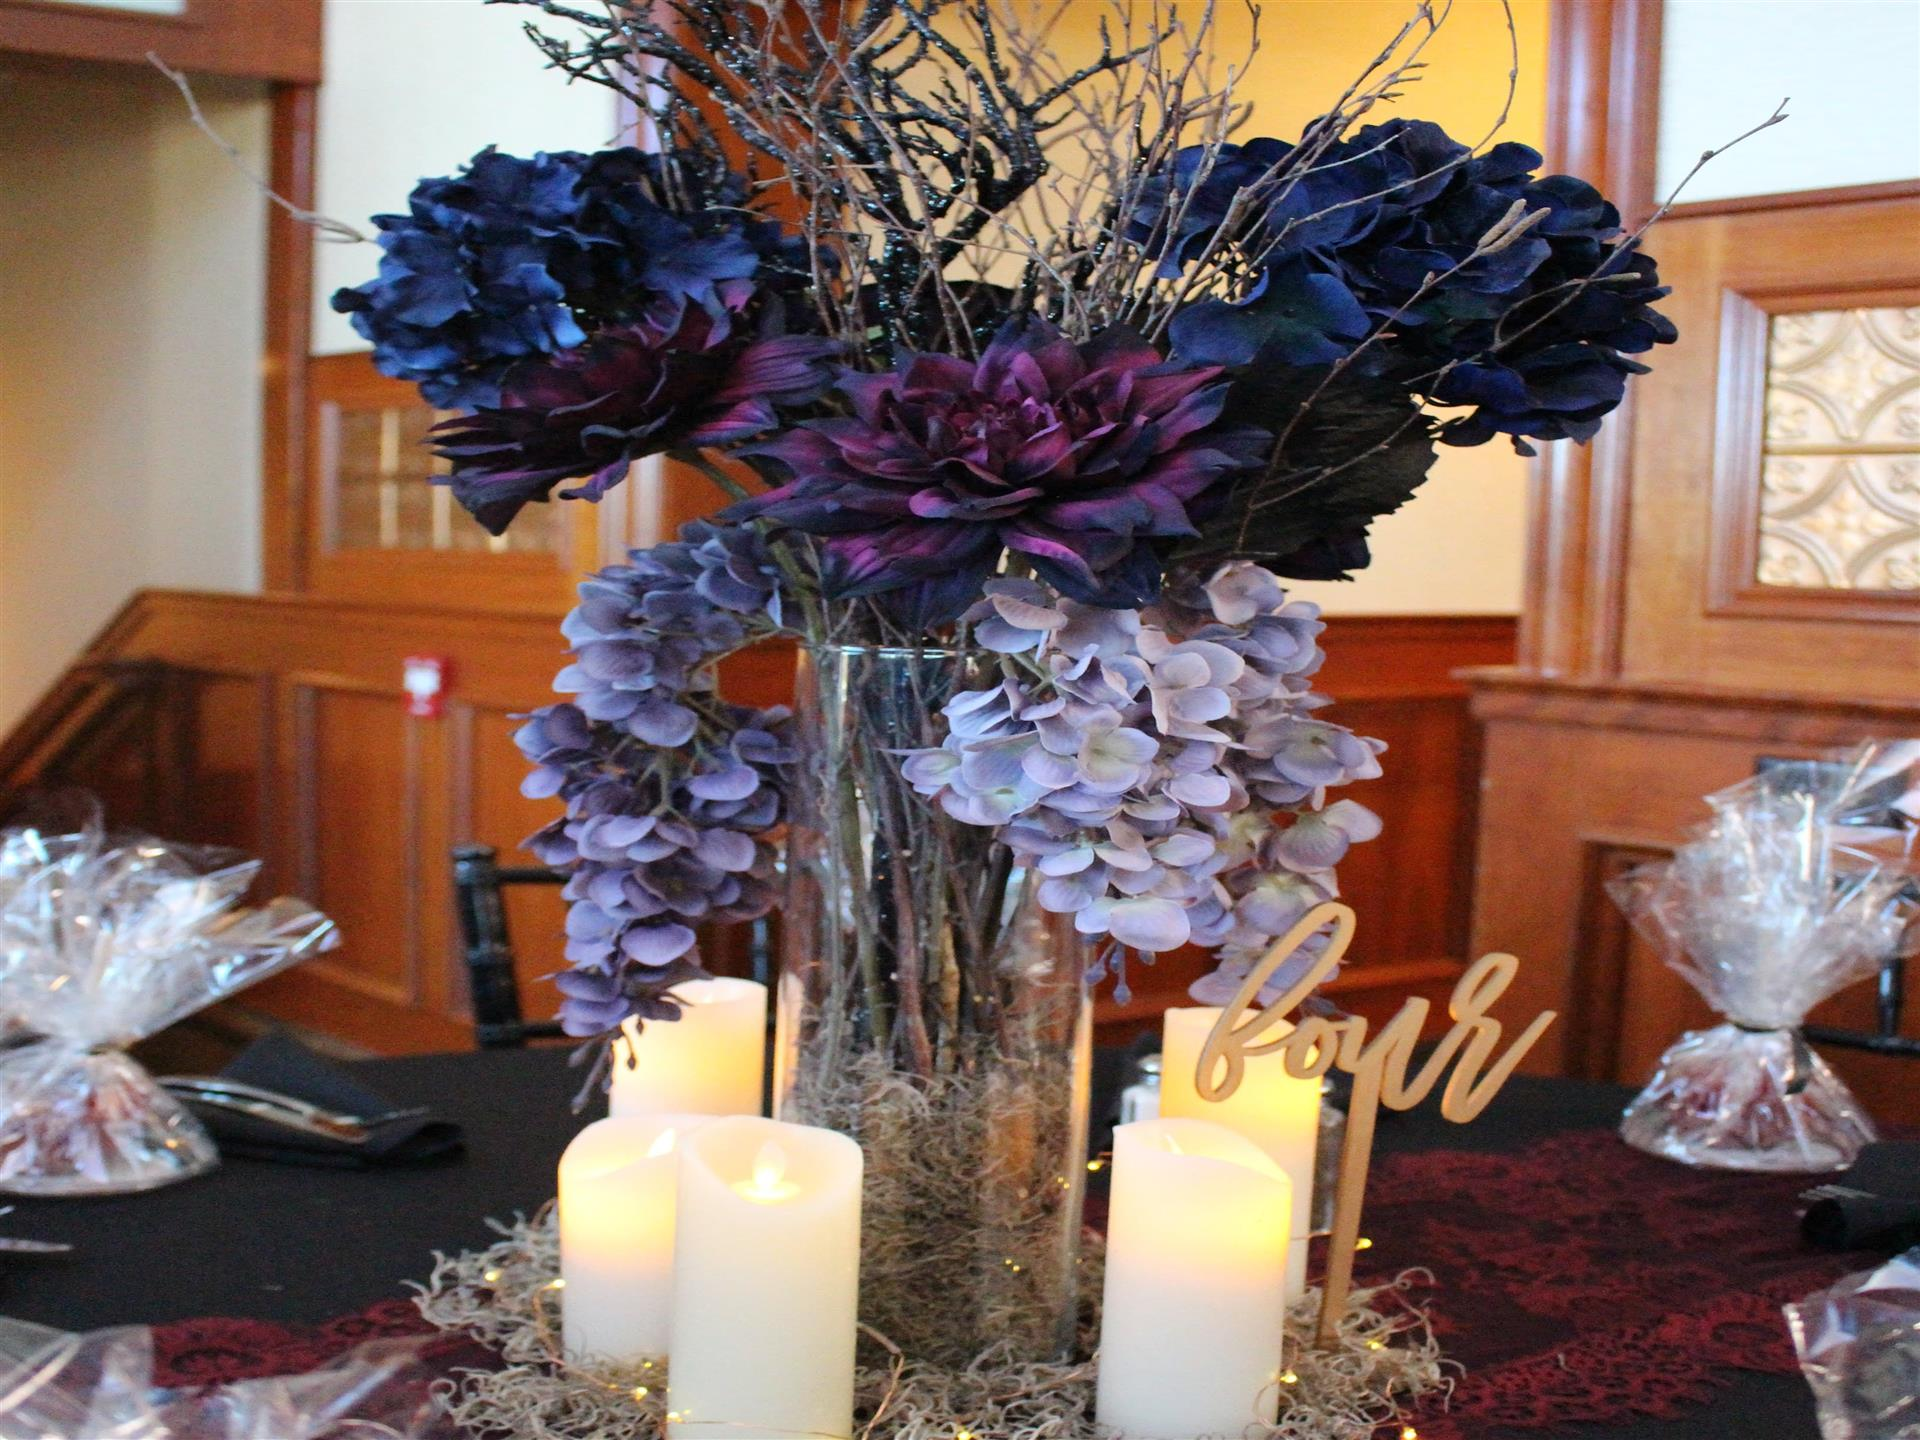 Party Room flower display with candles